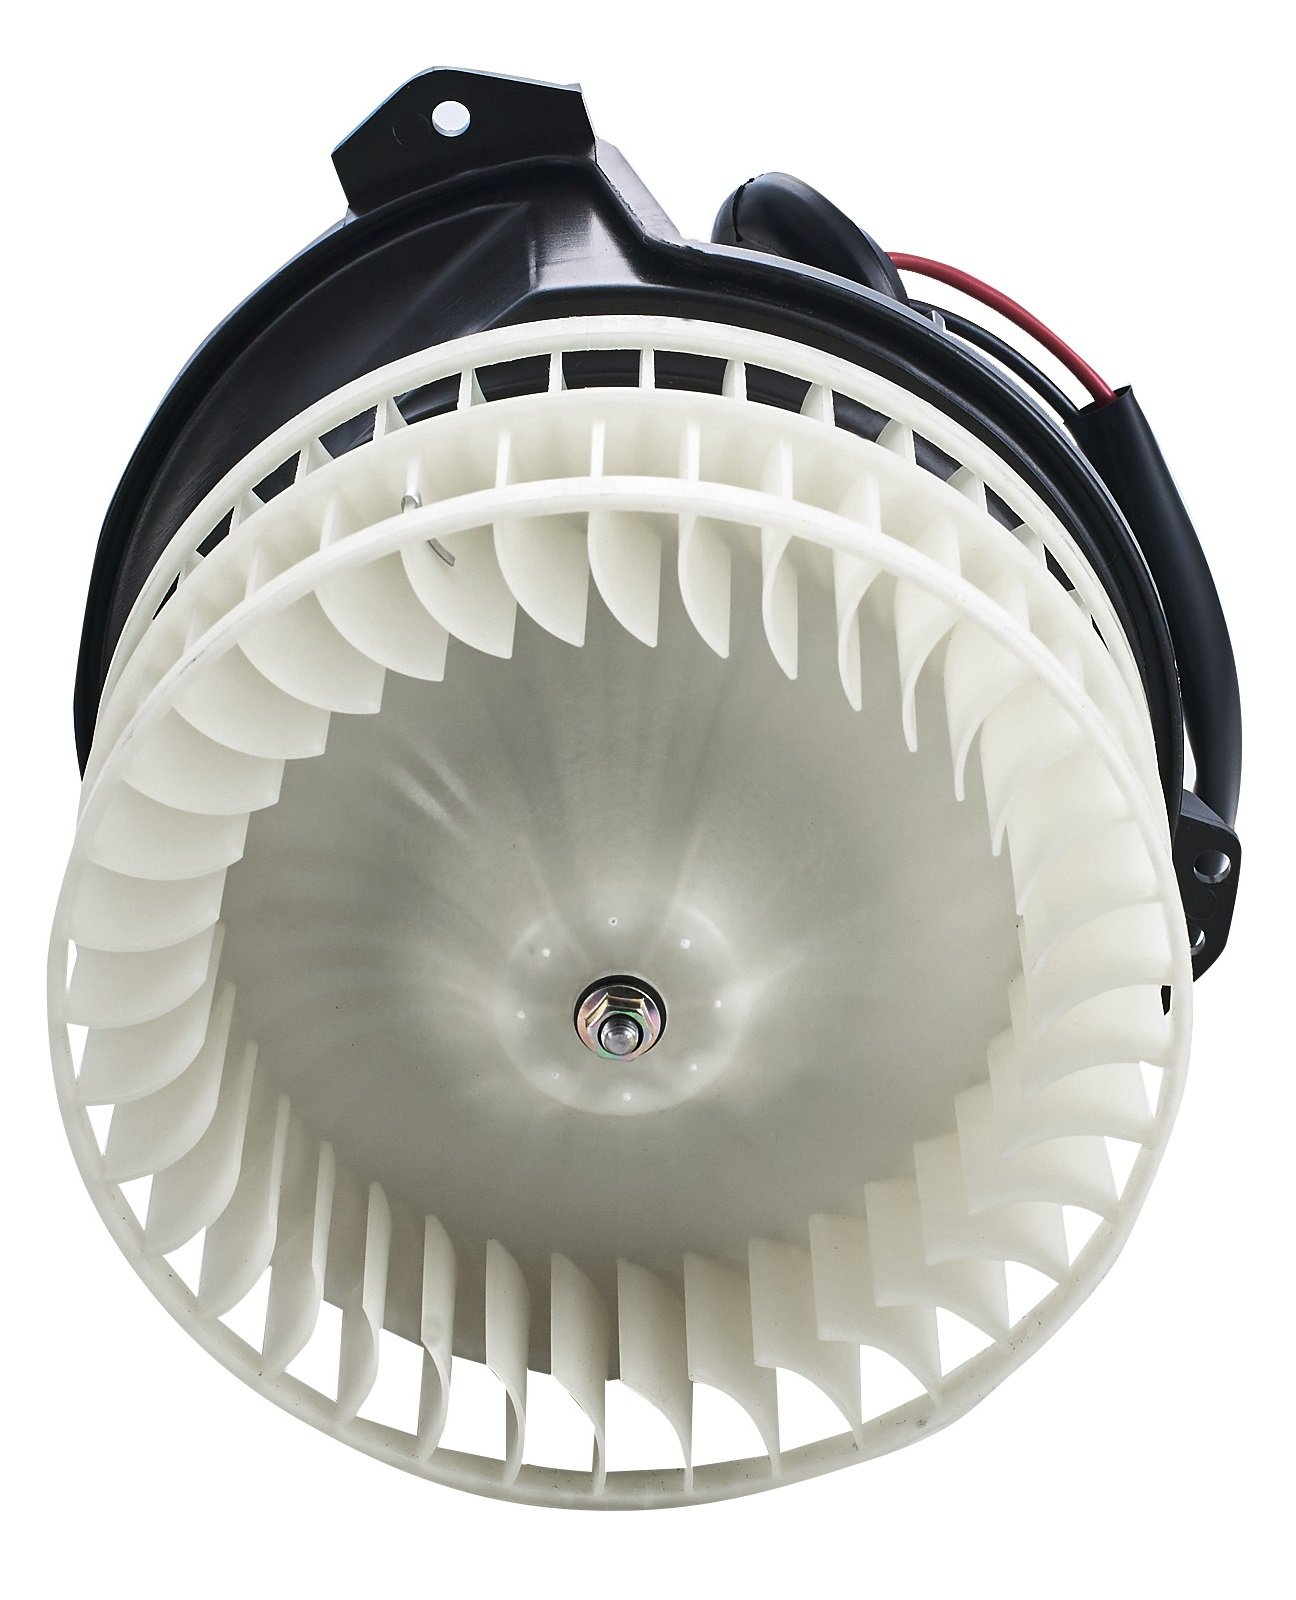 HVAC Blower Motor Fan Assembly for 2001-2007 Chysler Voyager Town Country Pacifica Dodge Caravan Grand 4885475AC 700070